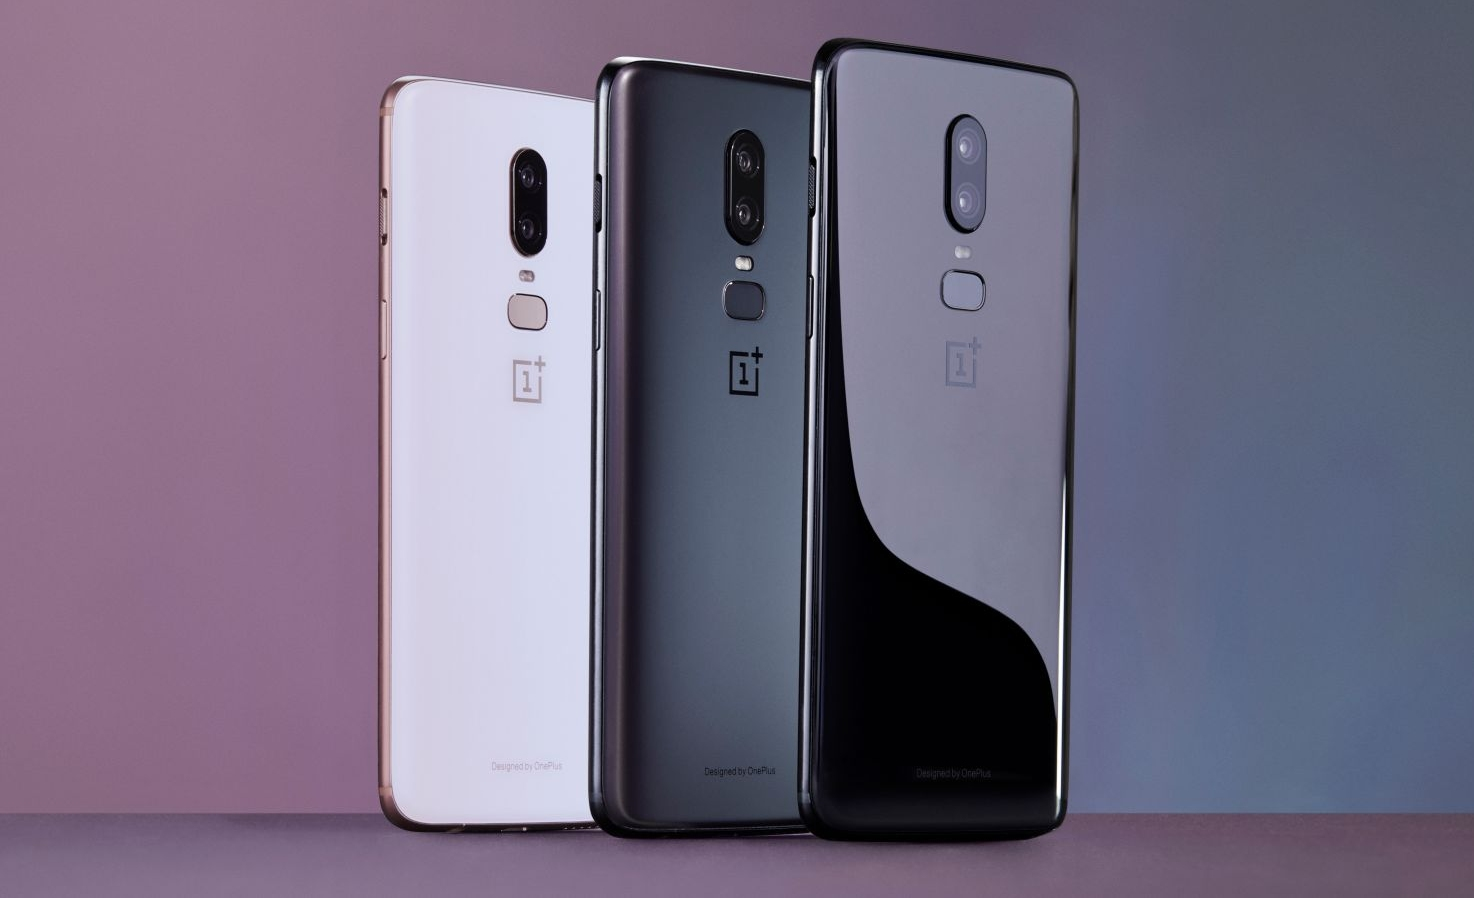 The OnePlus 6 sold over 1 million units in just 22 days